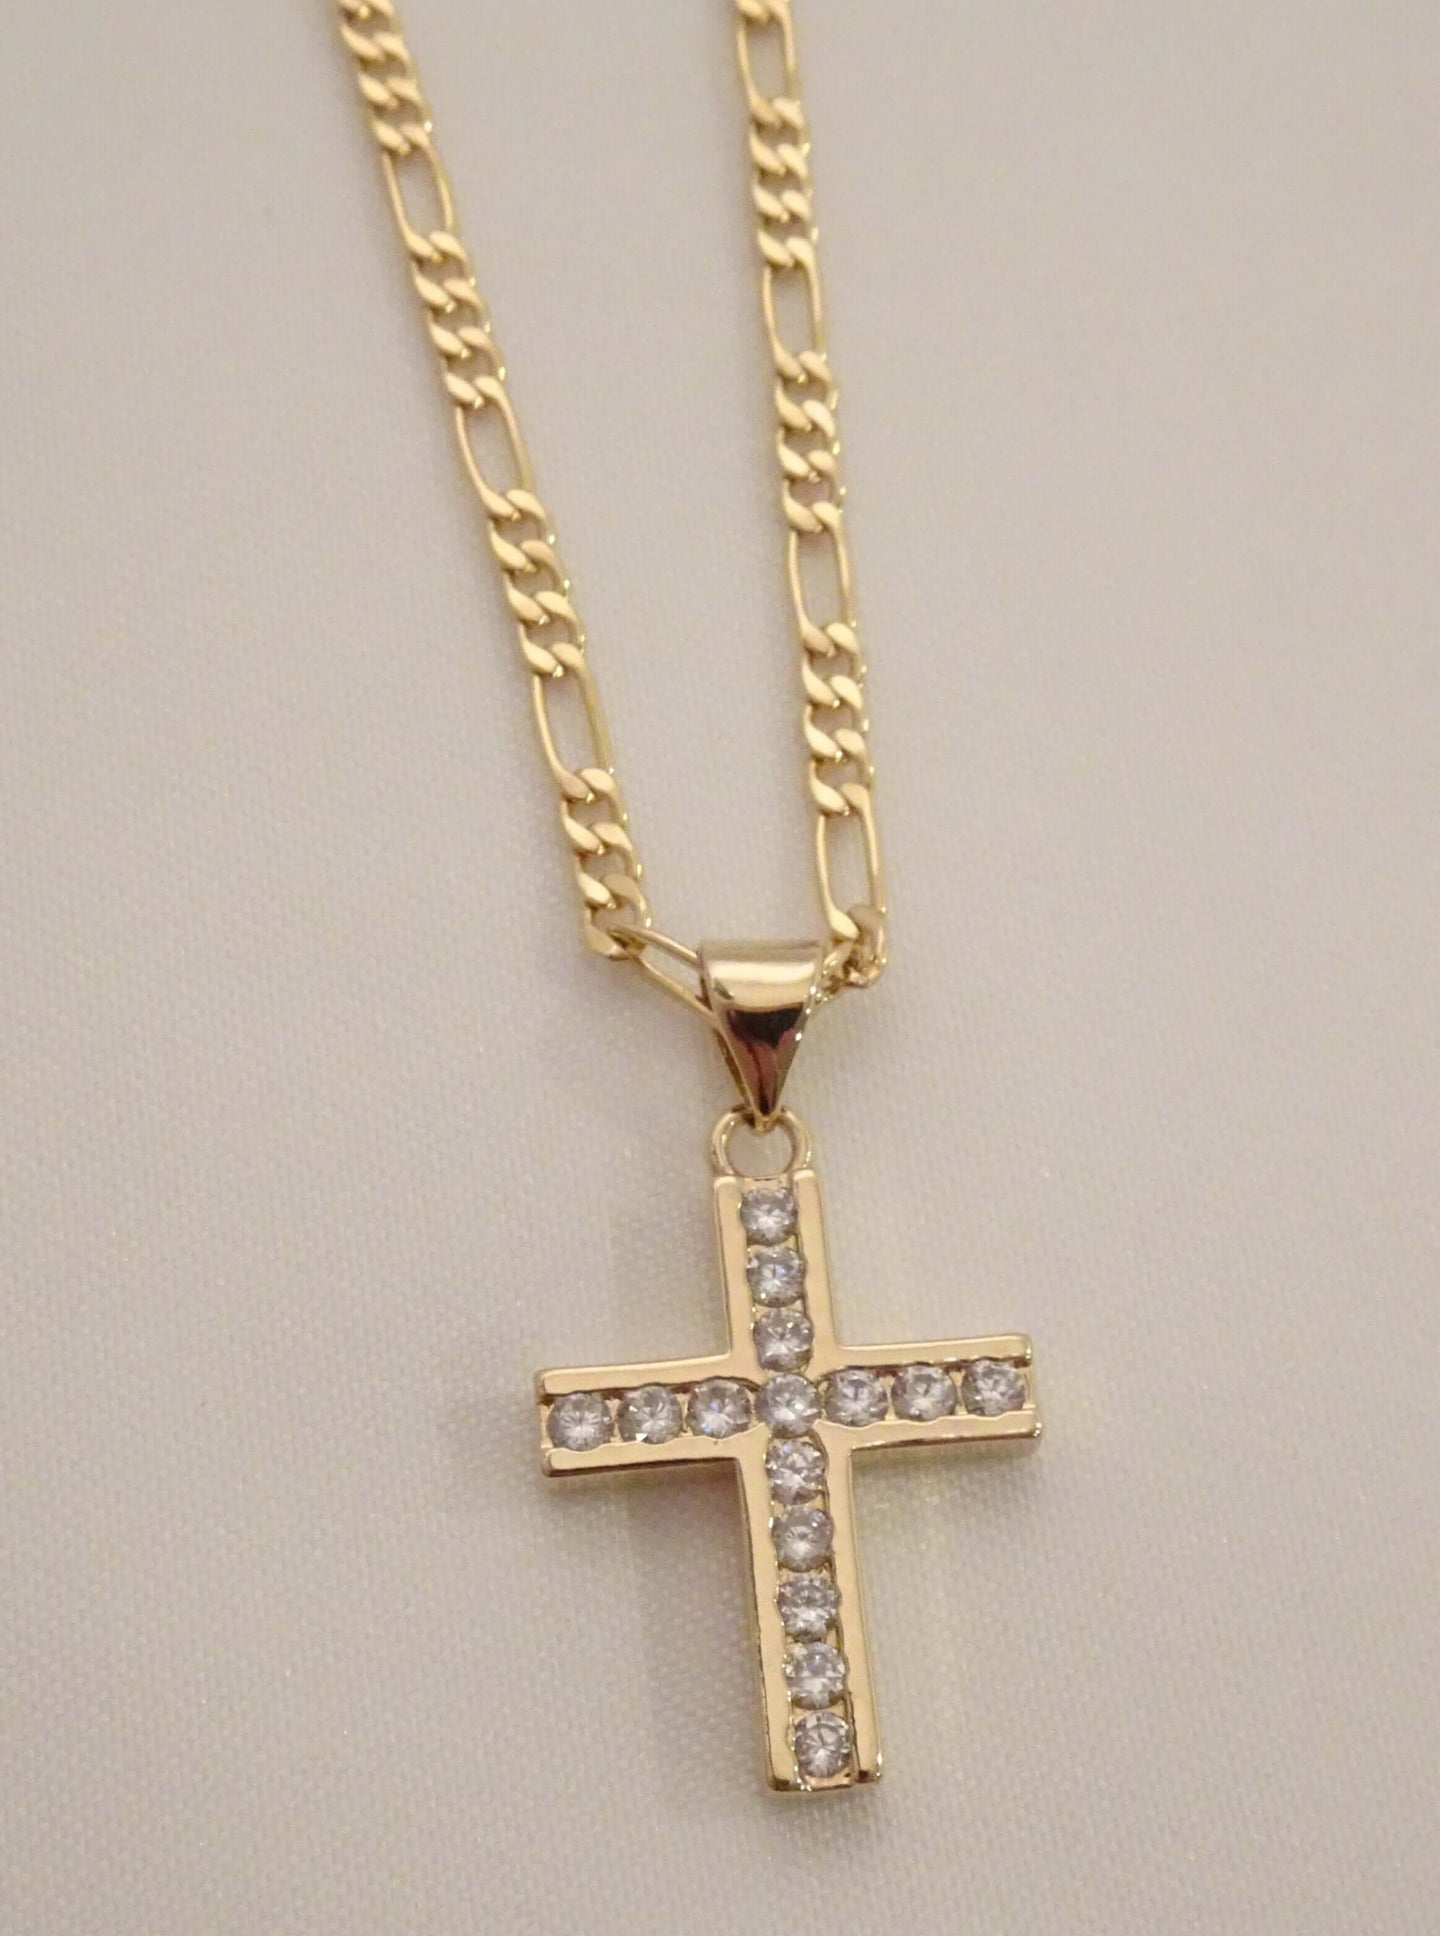 unique cross necklace, men cross necklace, mens cross necklace, cross necklace for women, cross pendant necklace, simple cross necklace, unique cross necklace, mens gold cross necklace, gold cross necklace for women, gold religious necklace, biker jewelry